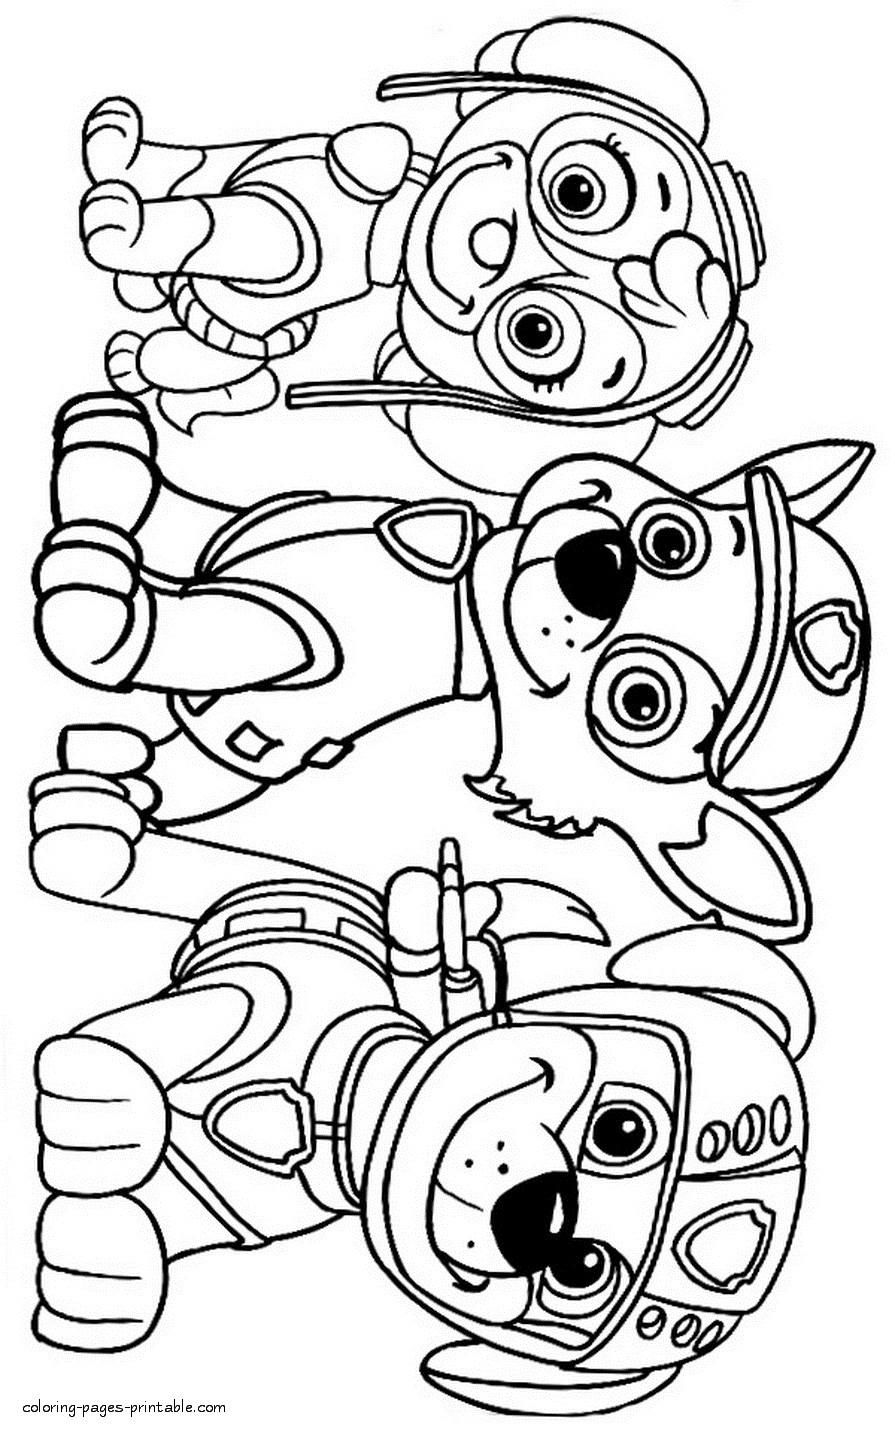 16 Free Colour Pages For Children Puppy Coloring Pages Paw Patrol Coloring Paw Patrol Coloring Pages